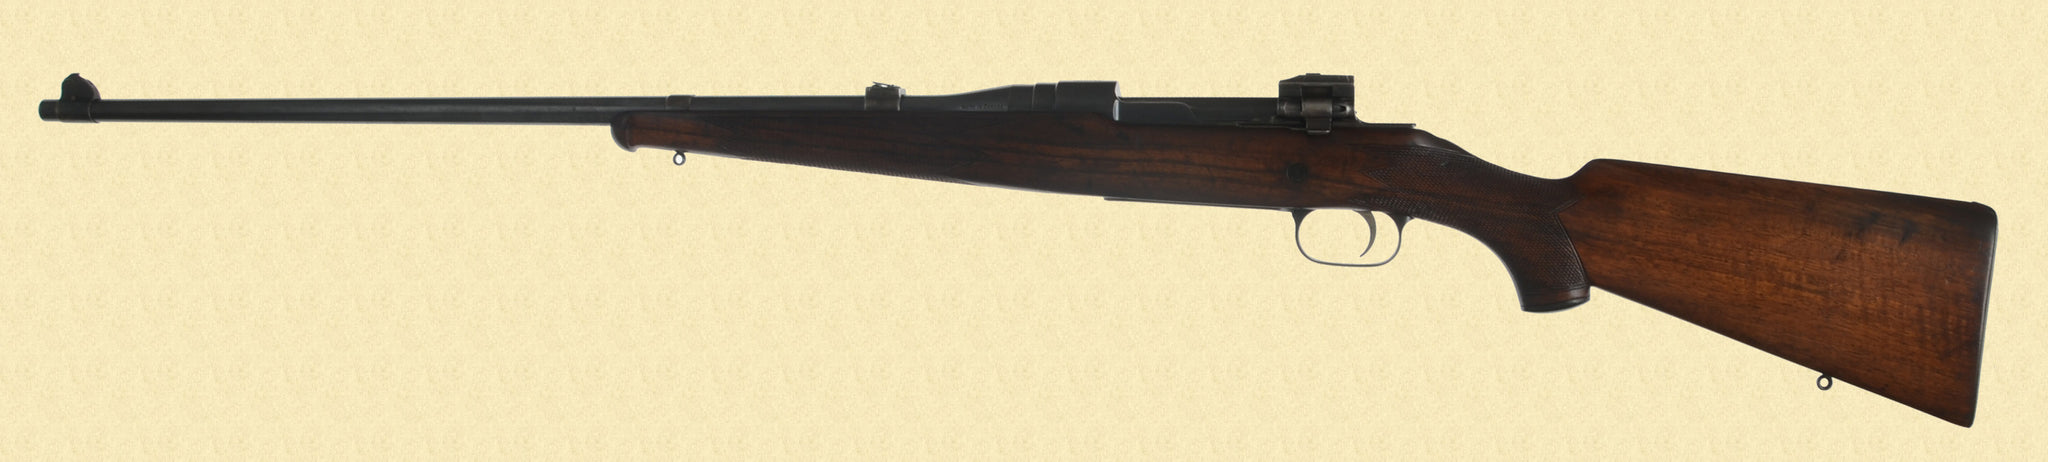 ROSS RIFLE CO 1910 SPORTING RIFLE